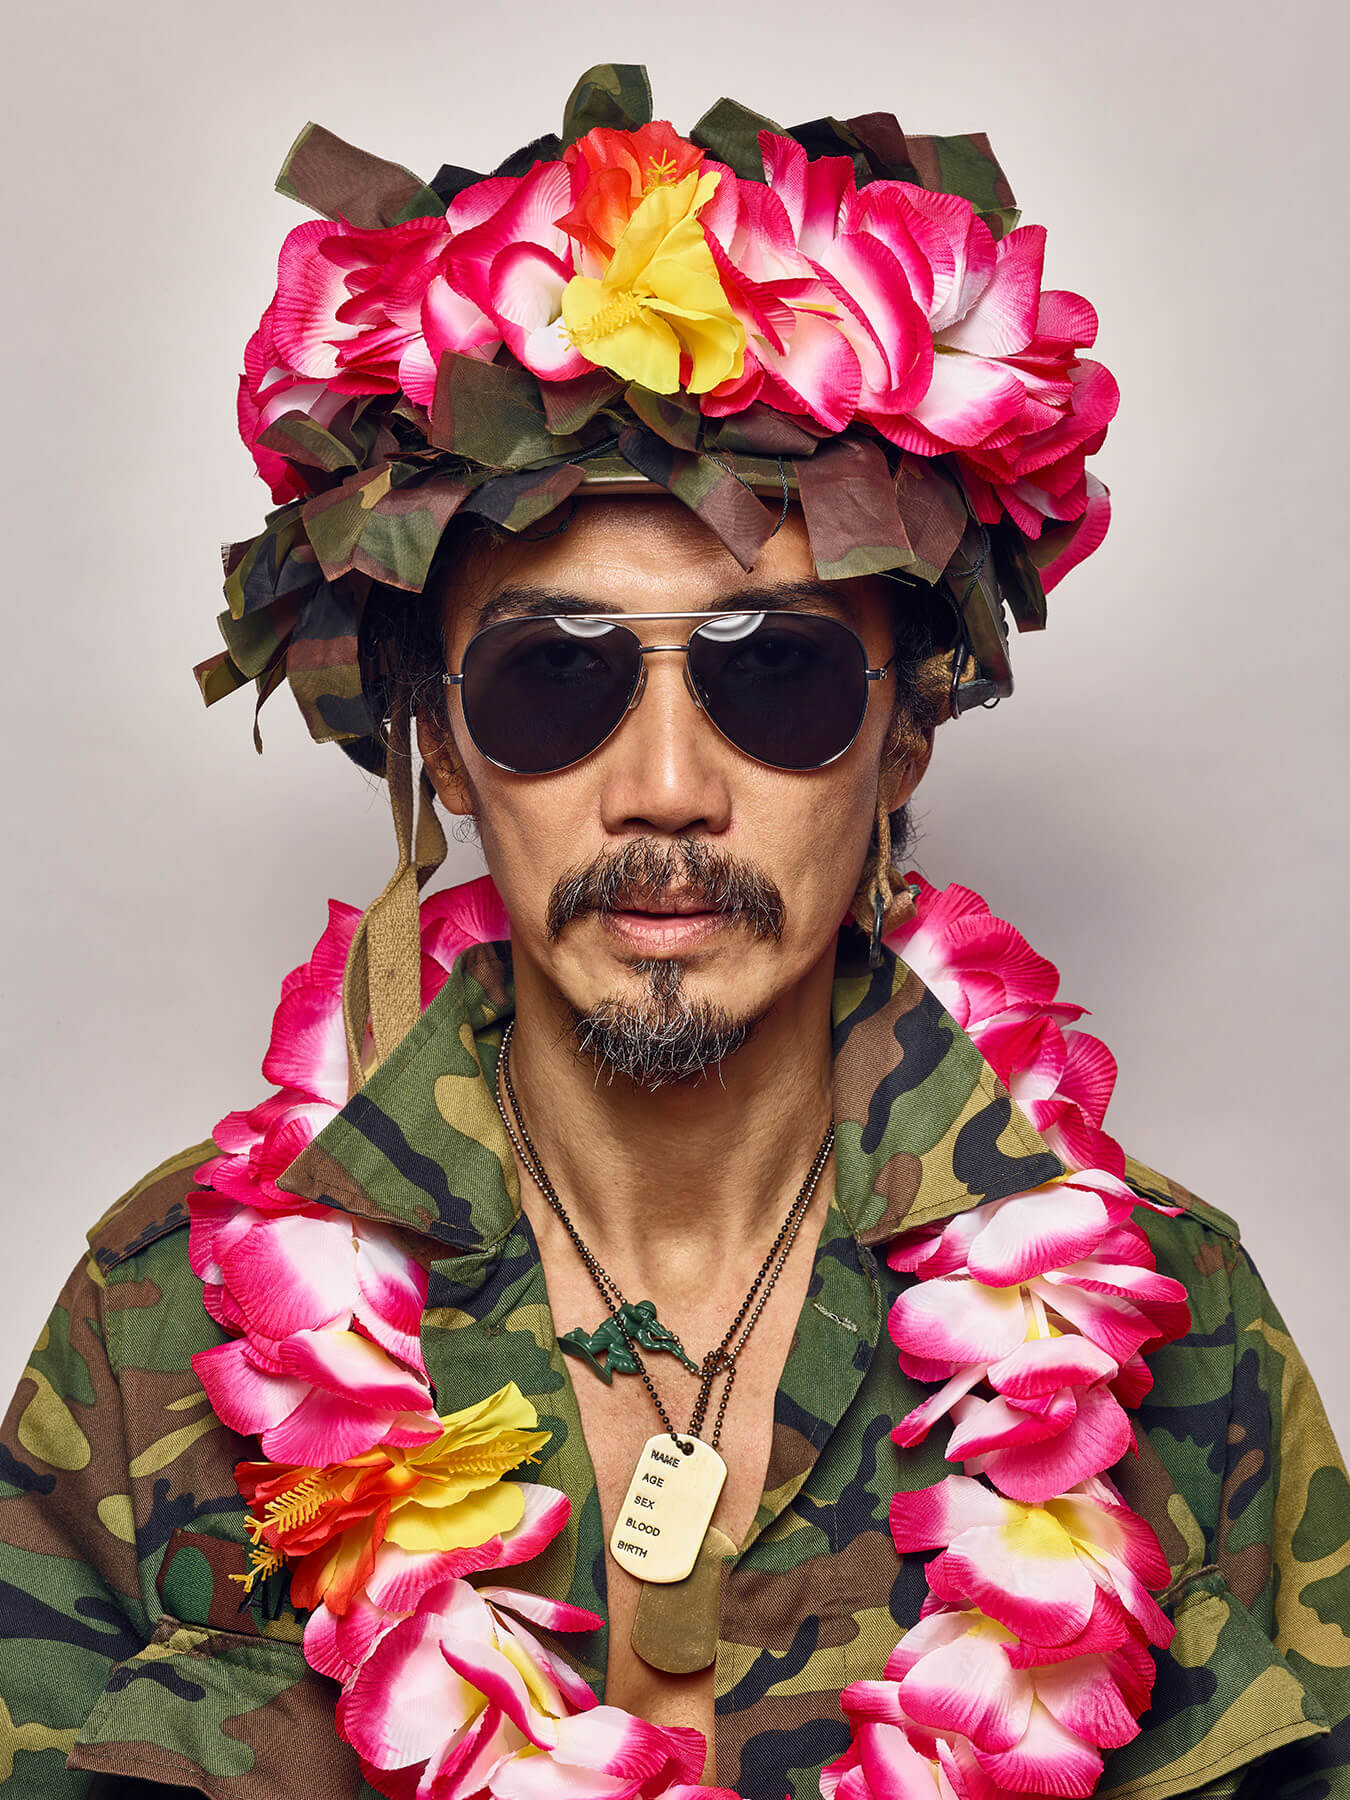 3 Aug 2017 Derong is in army uniform, aviator shades and flower garlands on him